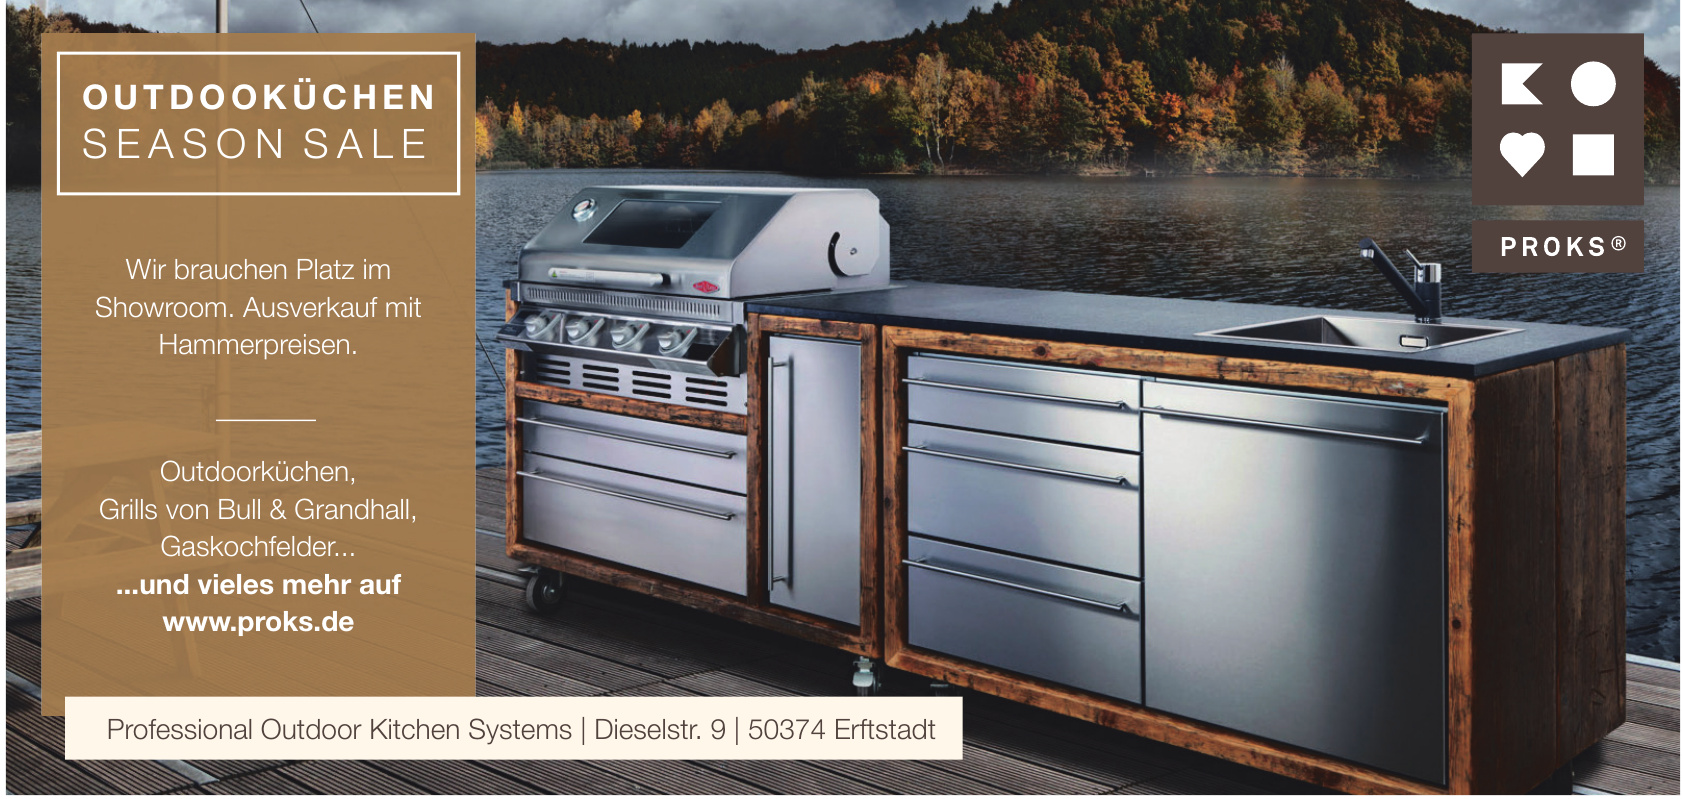 Proks Professional Outdoor Kitchen Systems